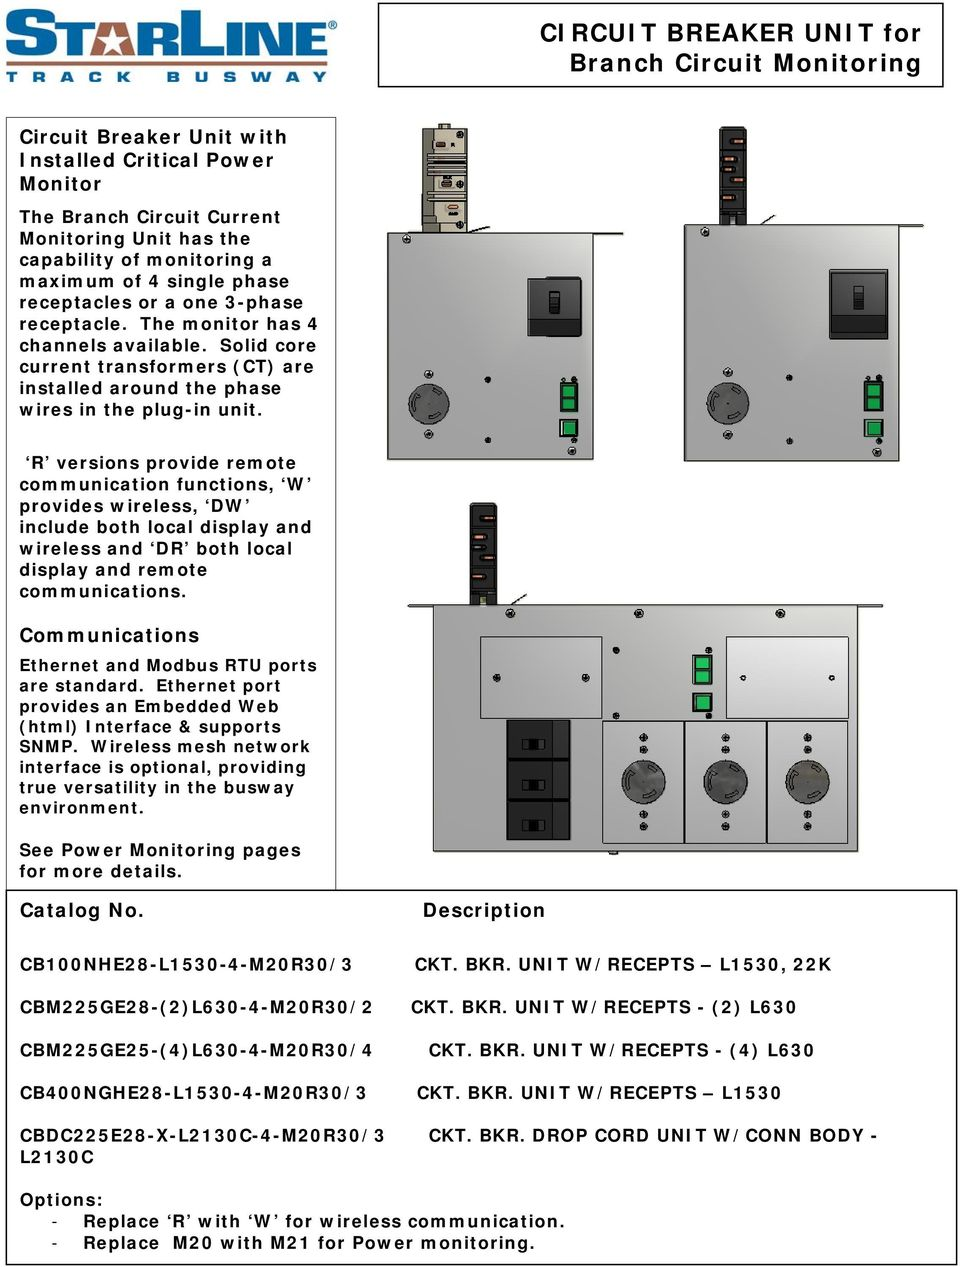 Critical Power Monitoring Cpm20 Cpm21 Details Pdf L15 30 Wiring Diagram R Versions Provide Remote Communication Functions W Provides Wireless Dw Include Both Local Display